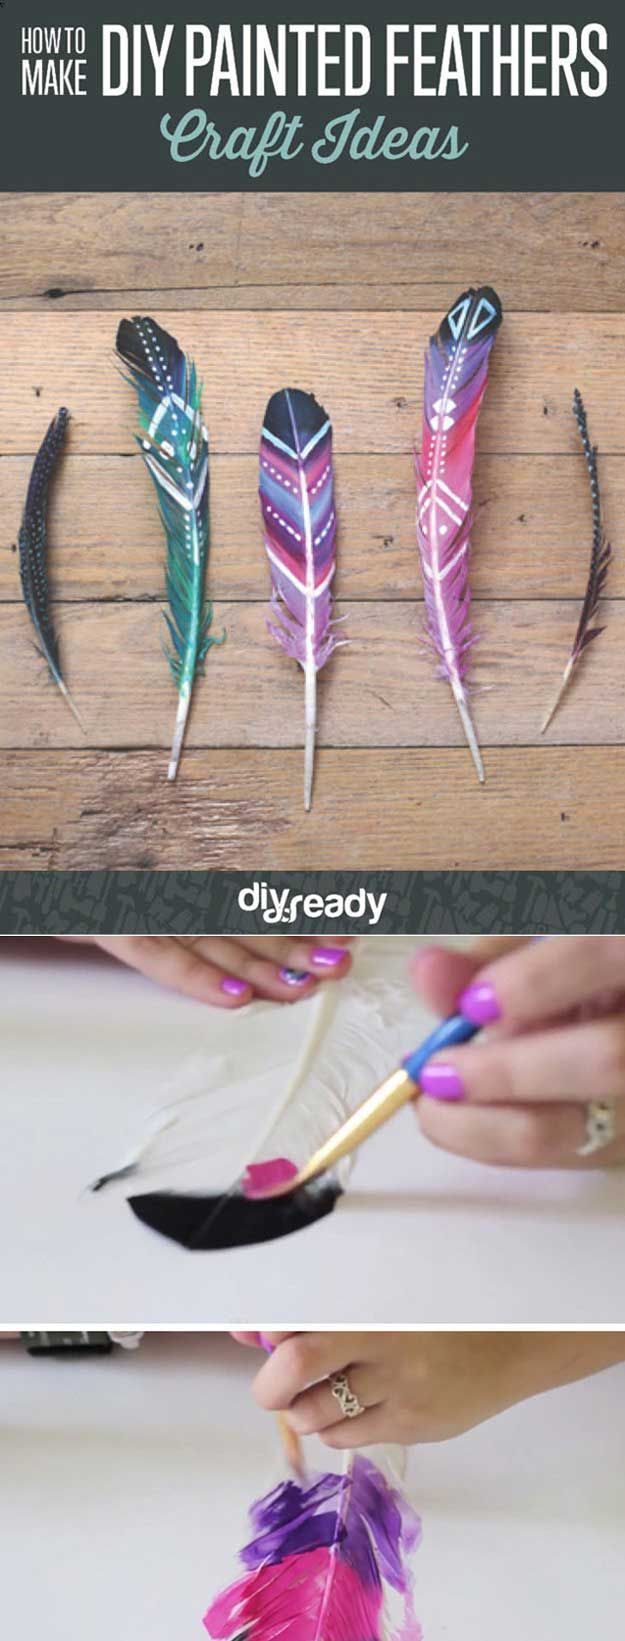 Cheap and Easy Crafts for Teens | DIY Painted Feathers by DIY Ready at http://diyready.com/27-easy-diy-projects-for-teens-who-love-to-craft/